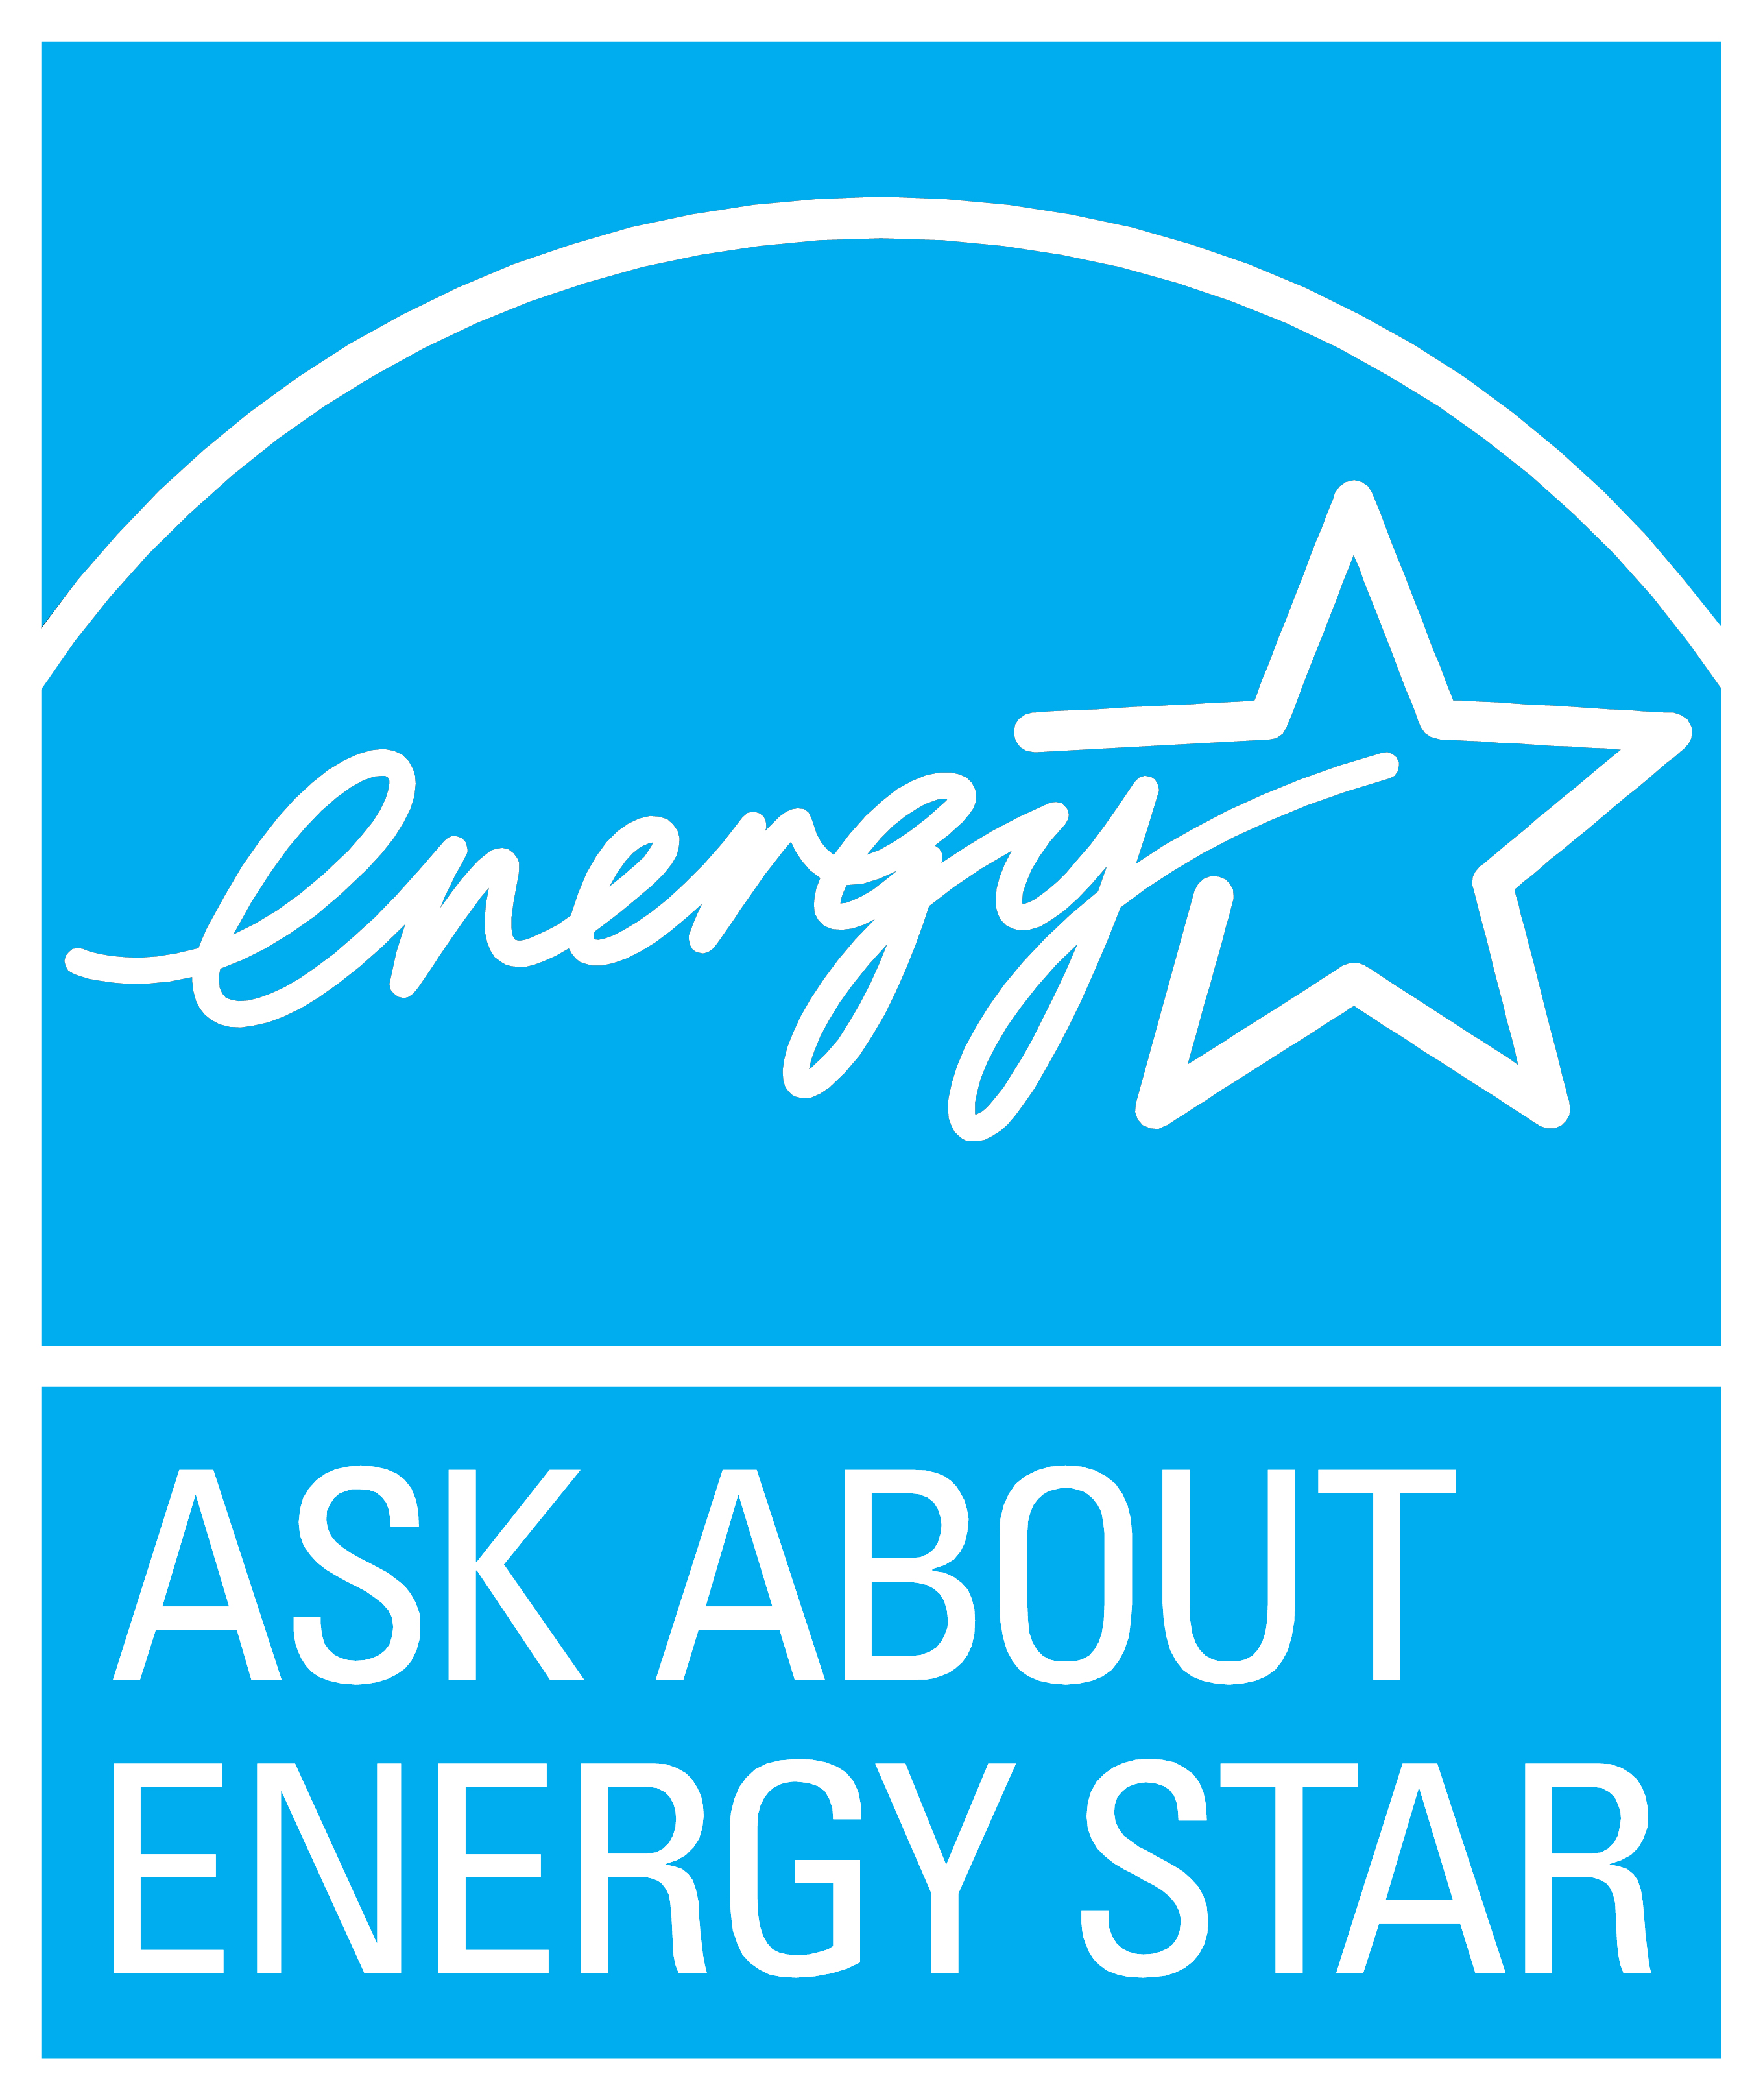 EnergyStar Ask About